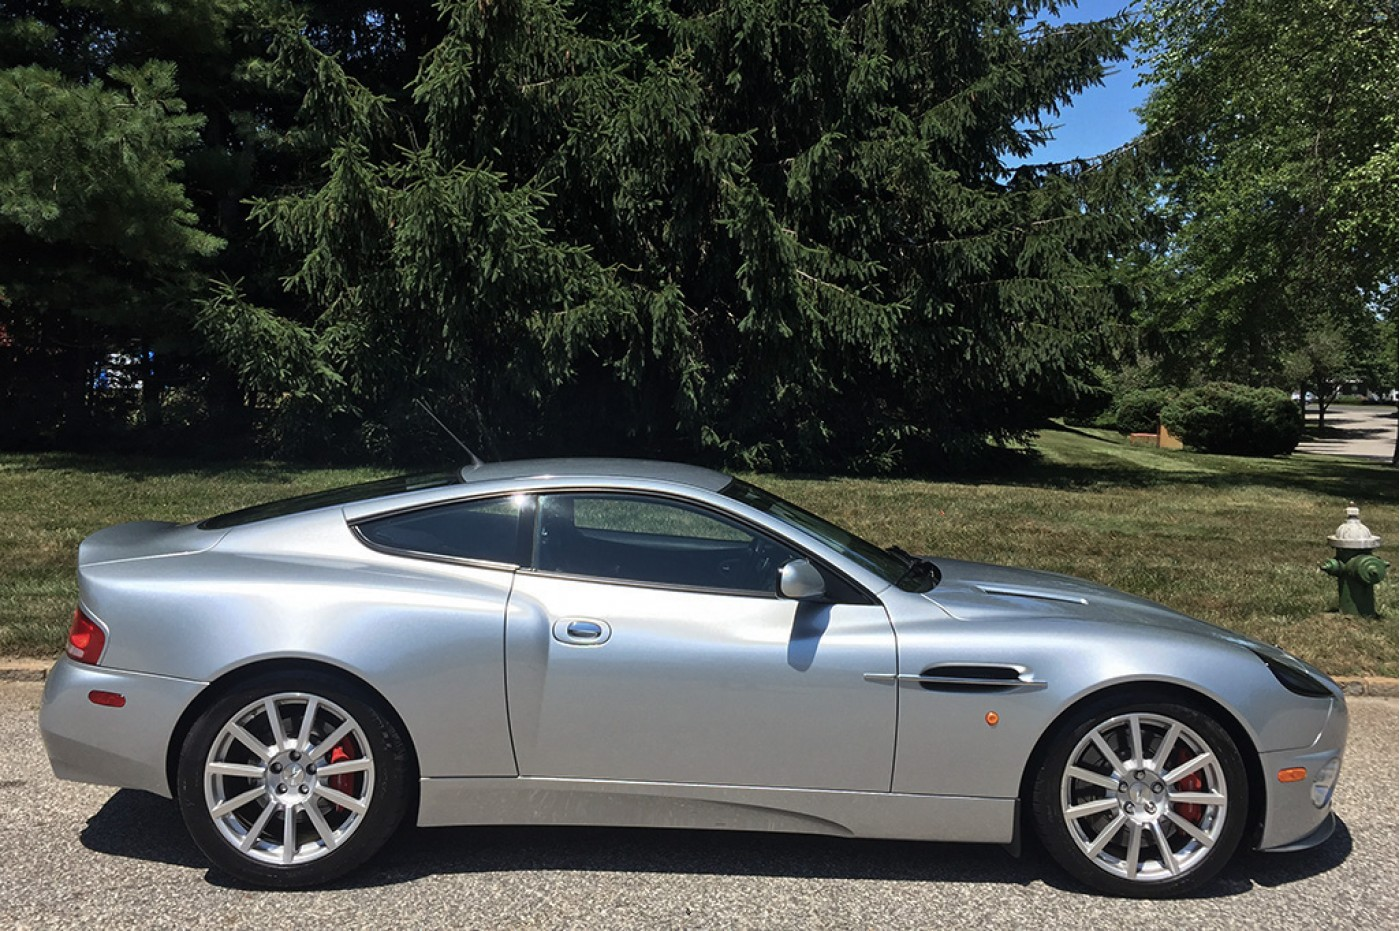 Aston Martin - Aston martin vanquish 2006 for sale